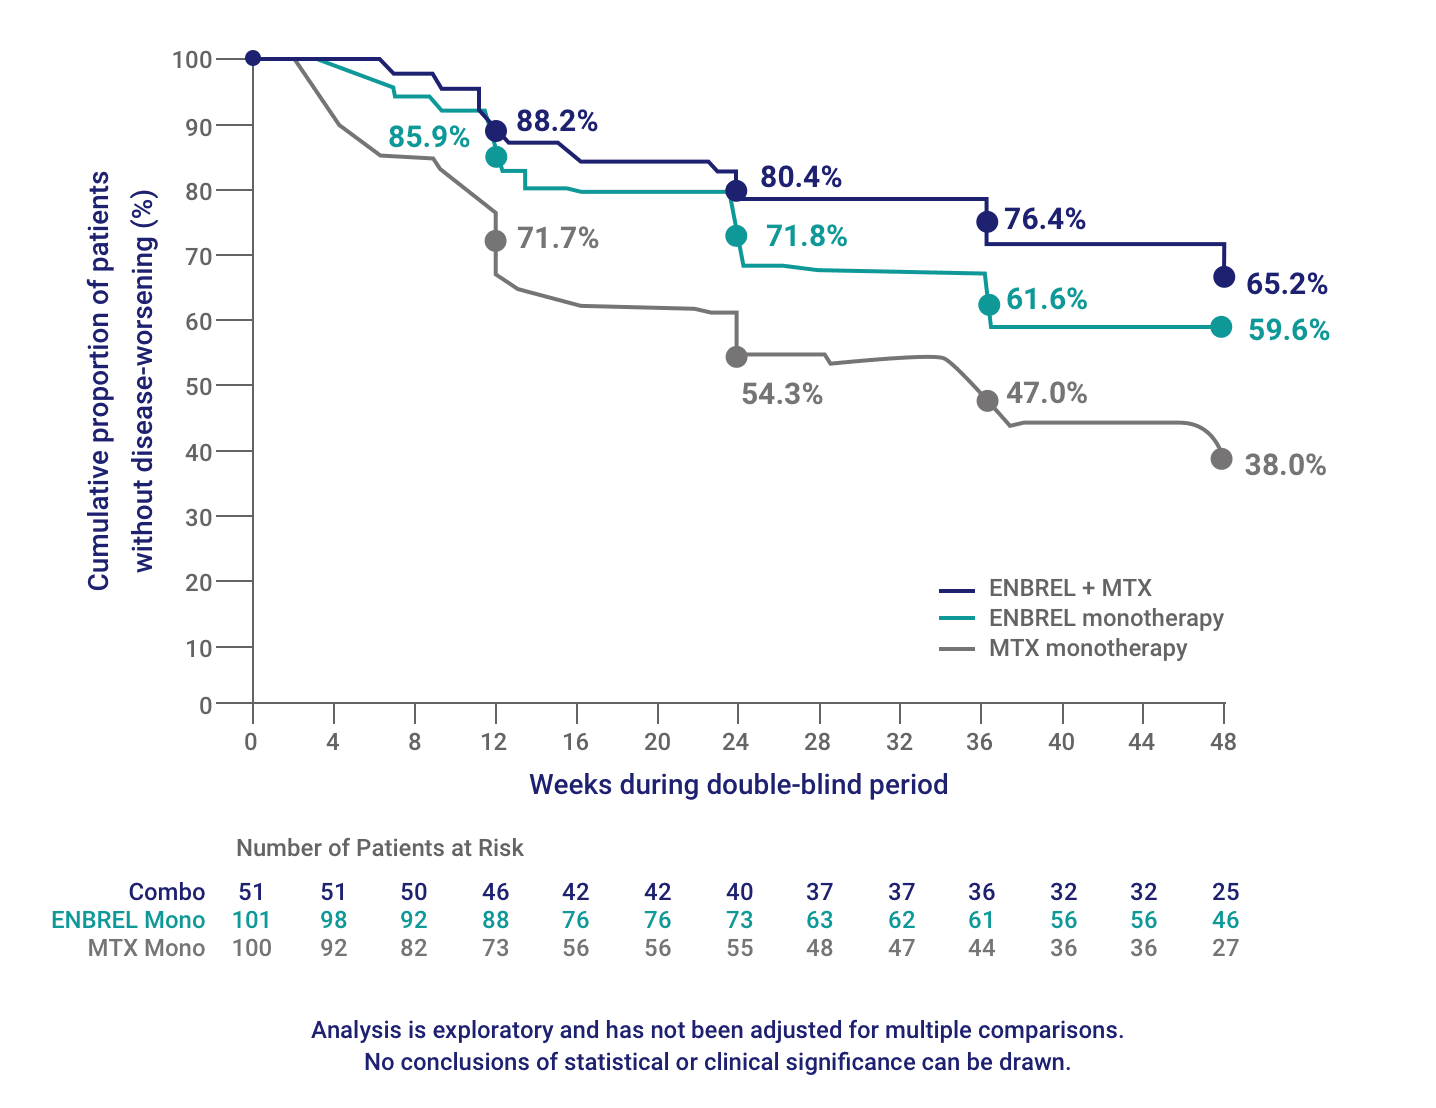 The Kaplan-Meier curves of time to disease-worsening at 48 weeks in the SEAM-RA study recorded 65.2% for ENBREL plus MTX combination therapy, 59.6% for ENBREL monotherapy, and 38% for MTX monotherapy